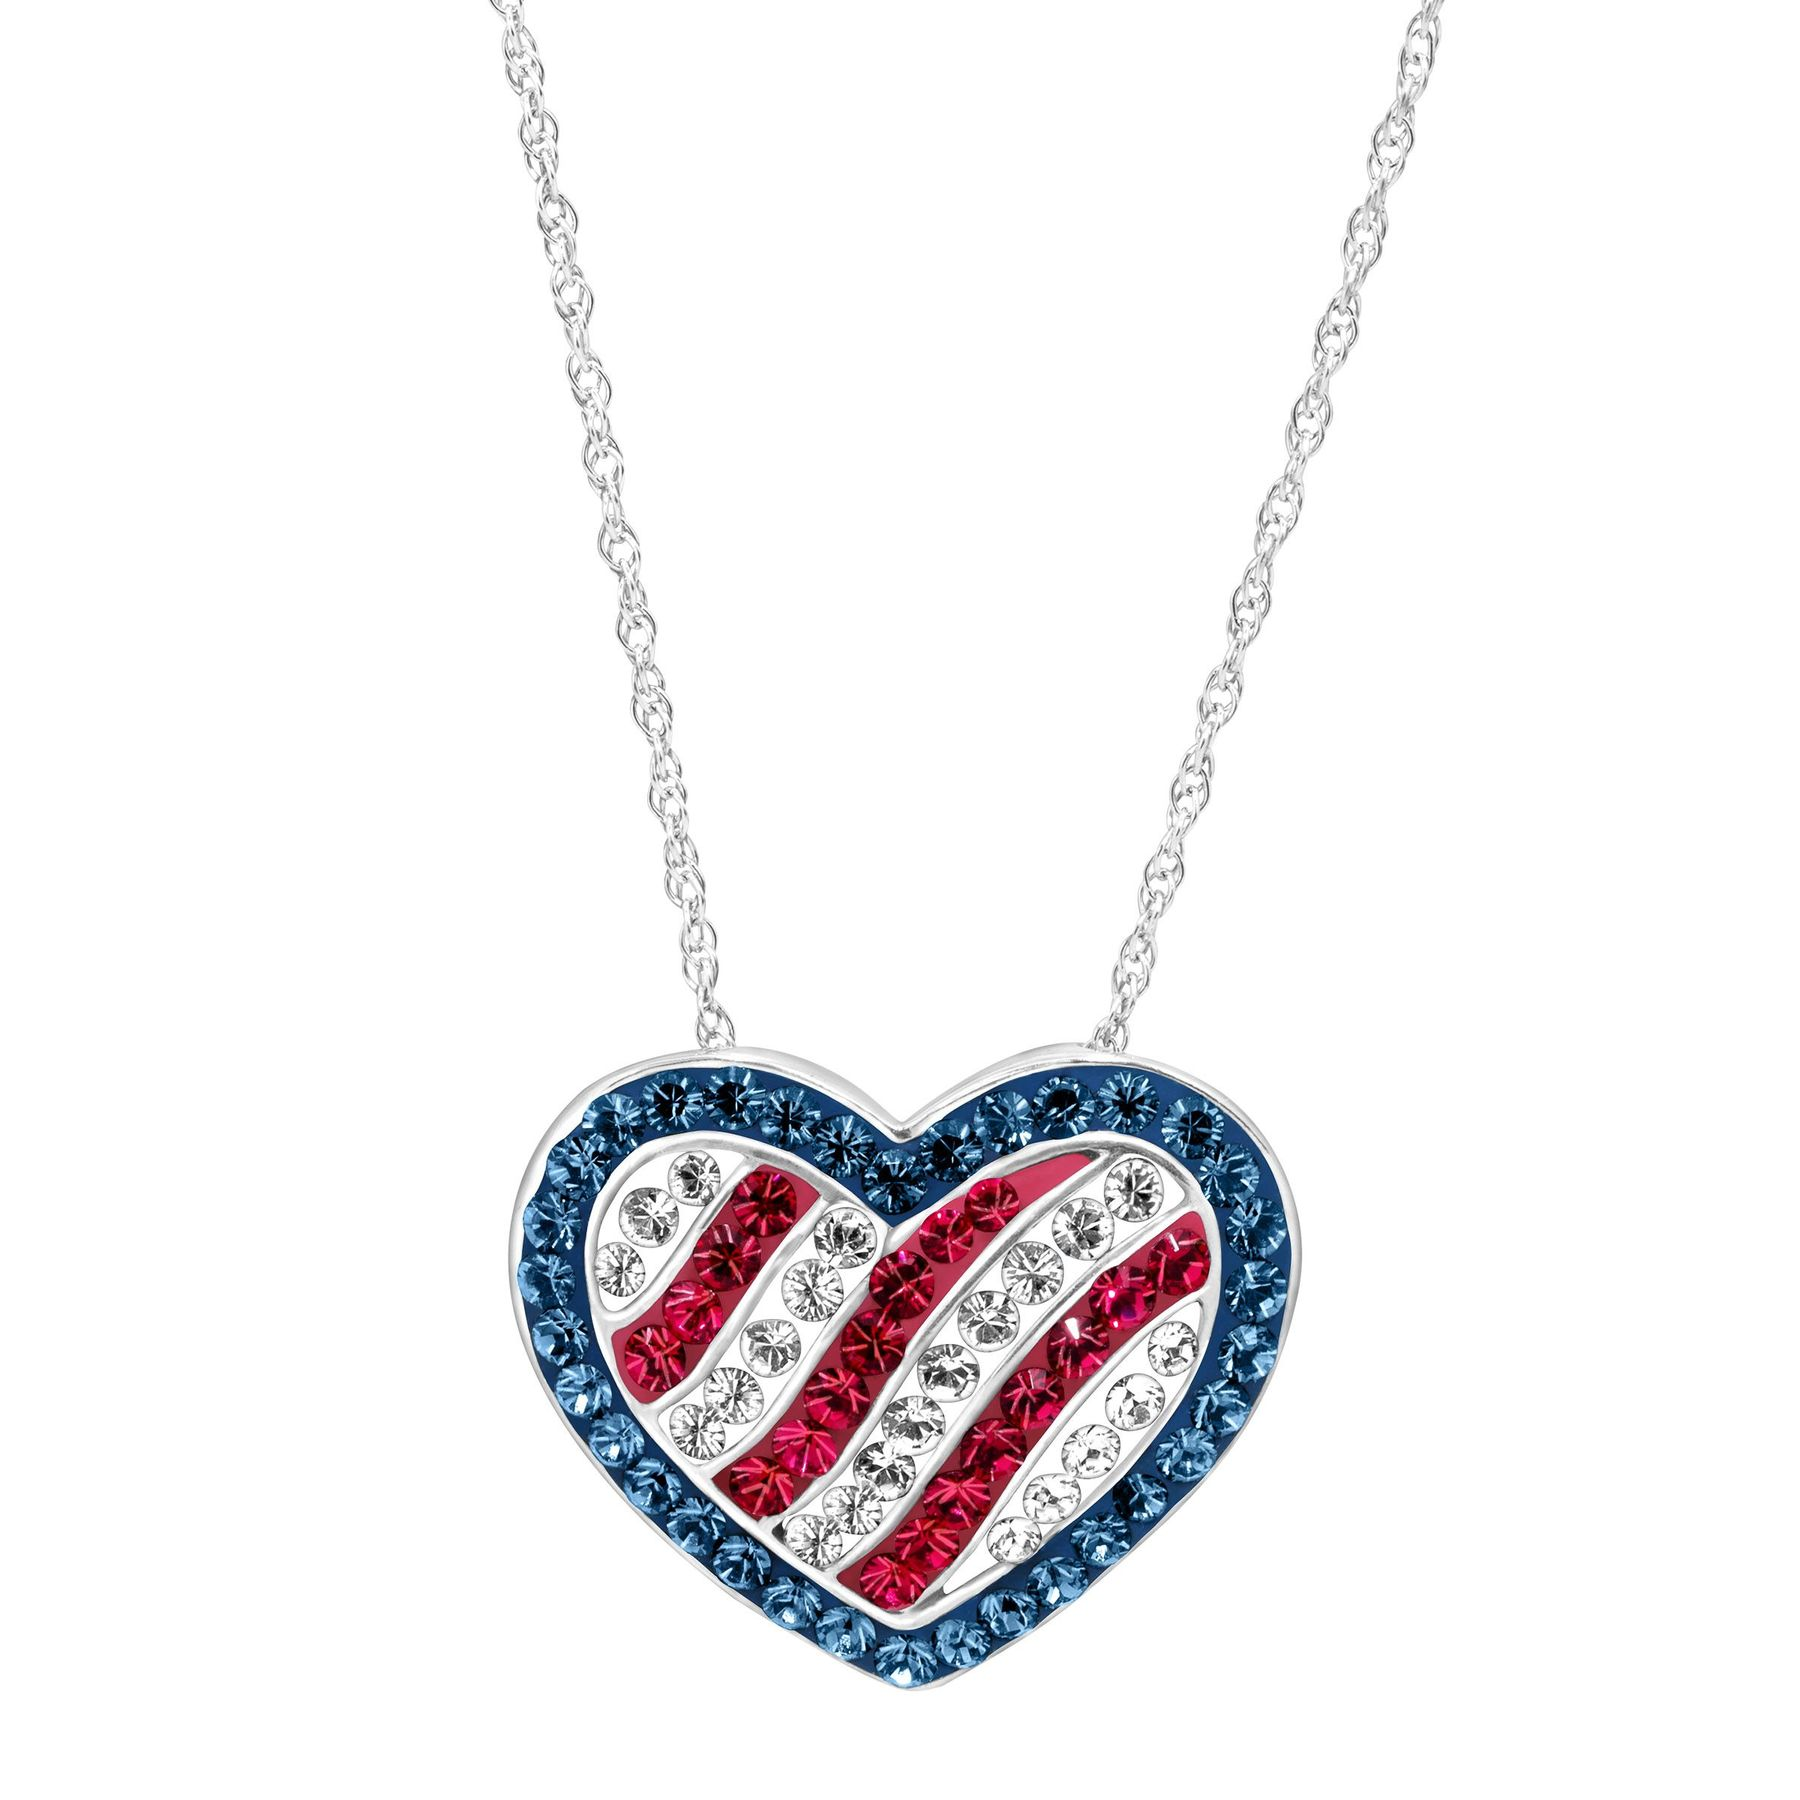 flag tone necklace for charm store design product tellurion eagle glass gem model patriot pendant gift silver totem american